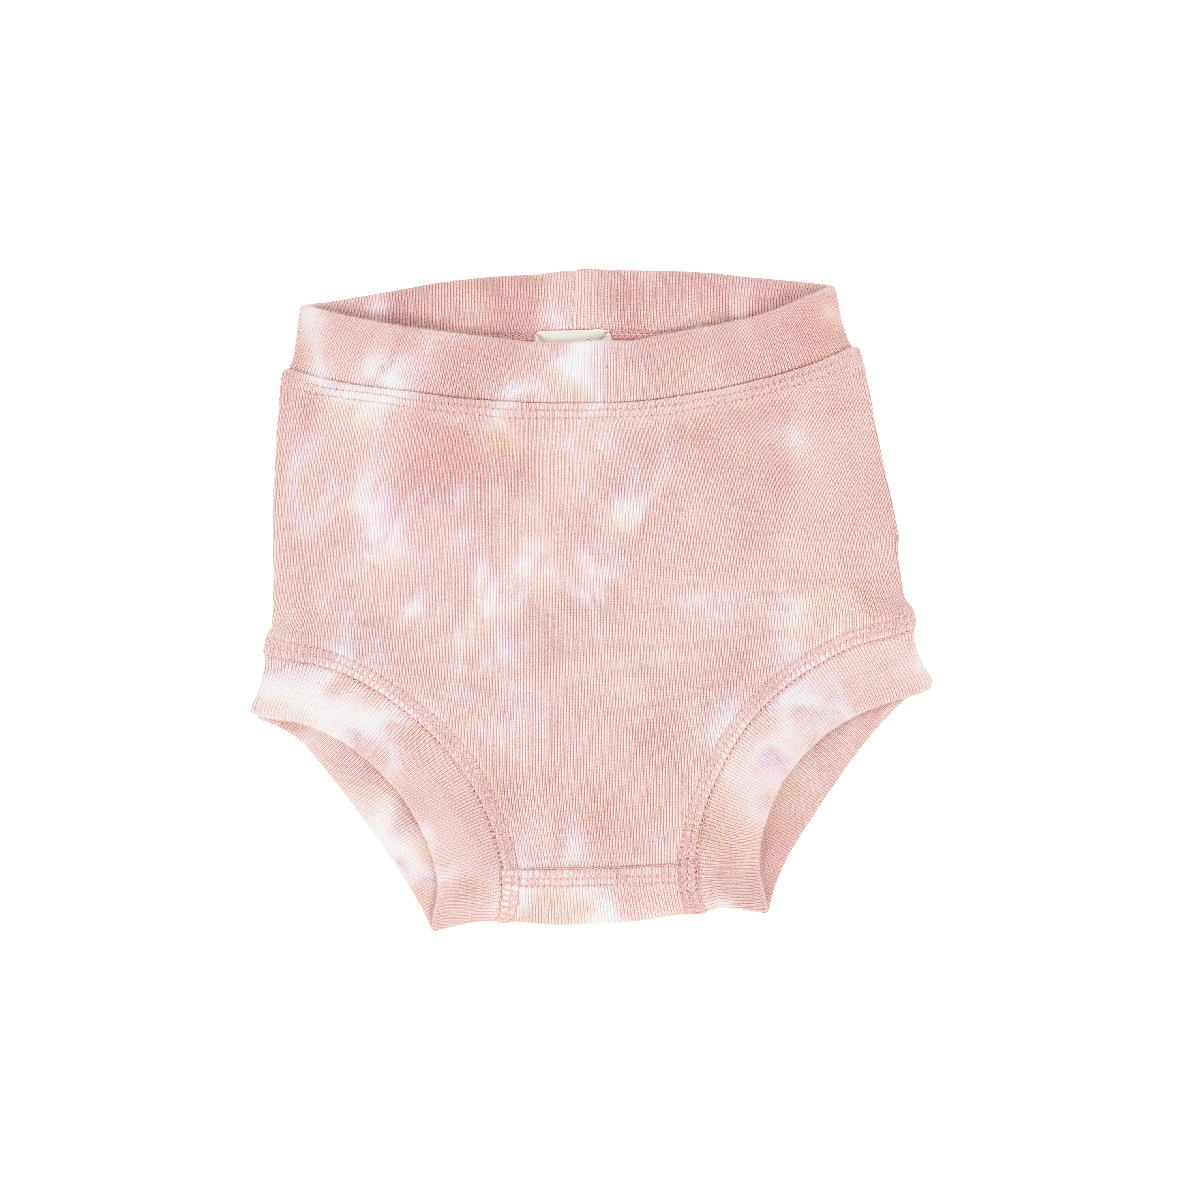 *PRE-ORDER* Analogie Blush Watercolor Bloomers